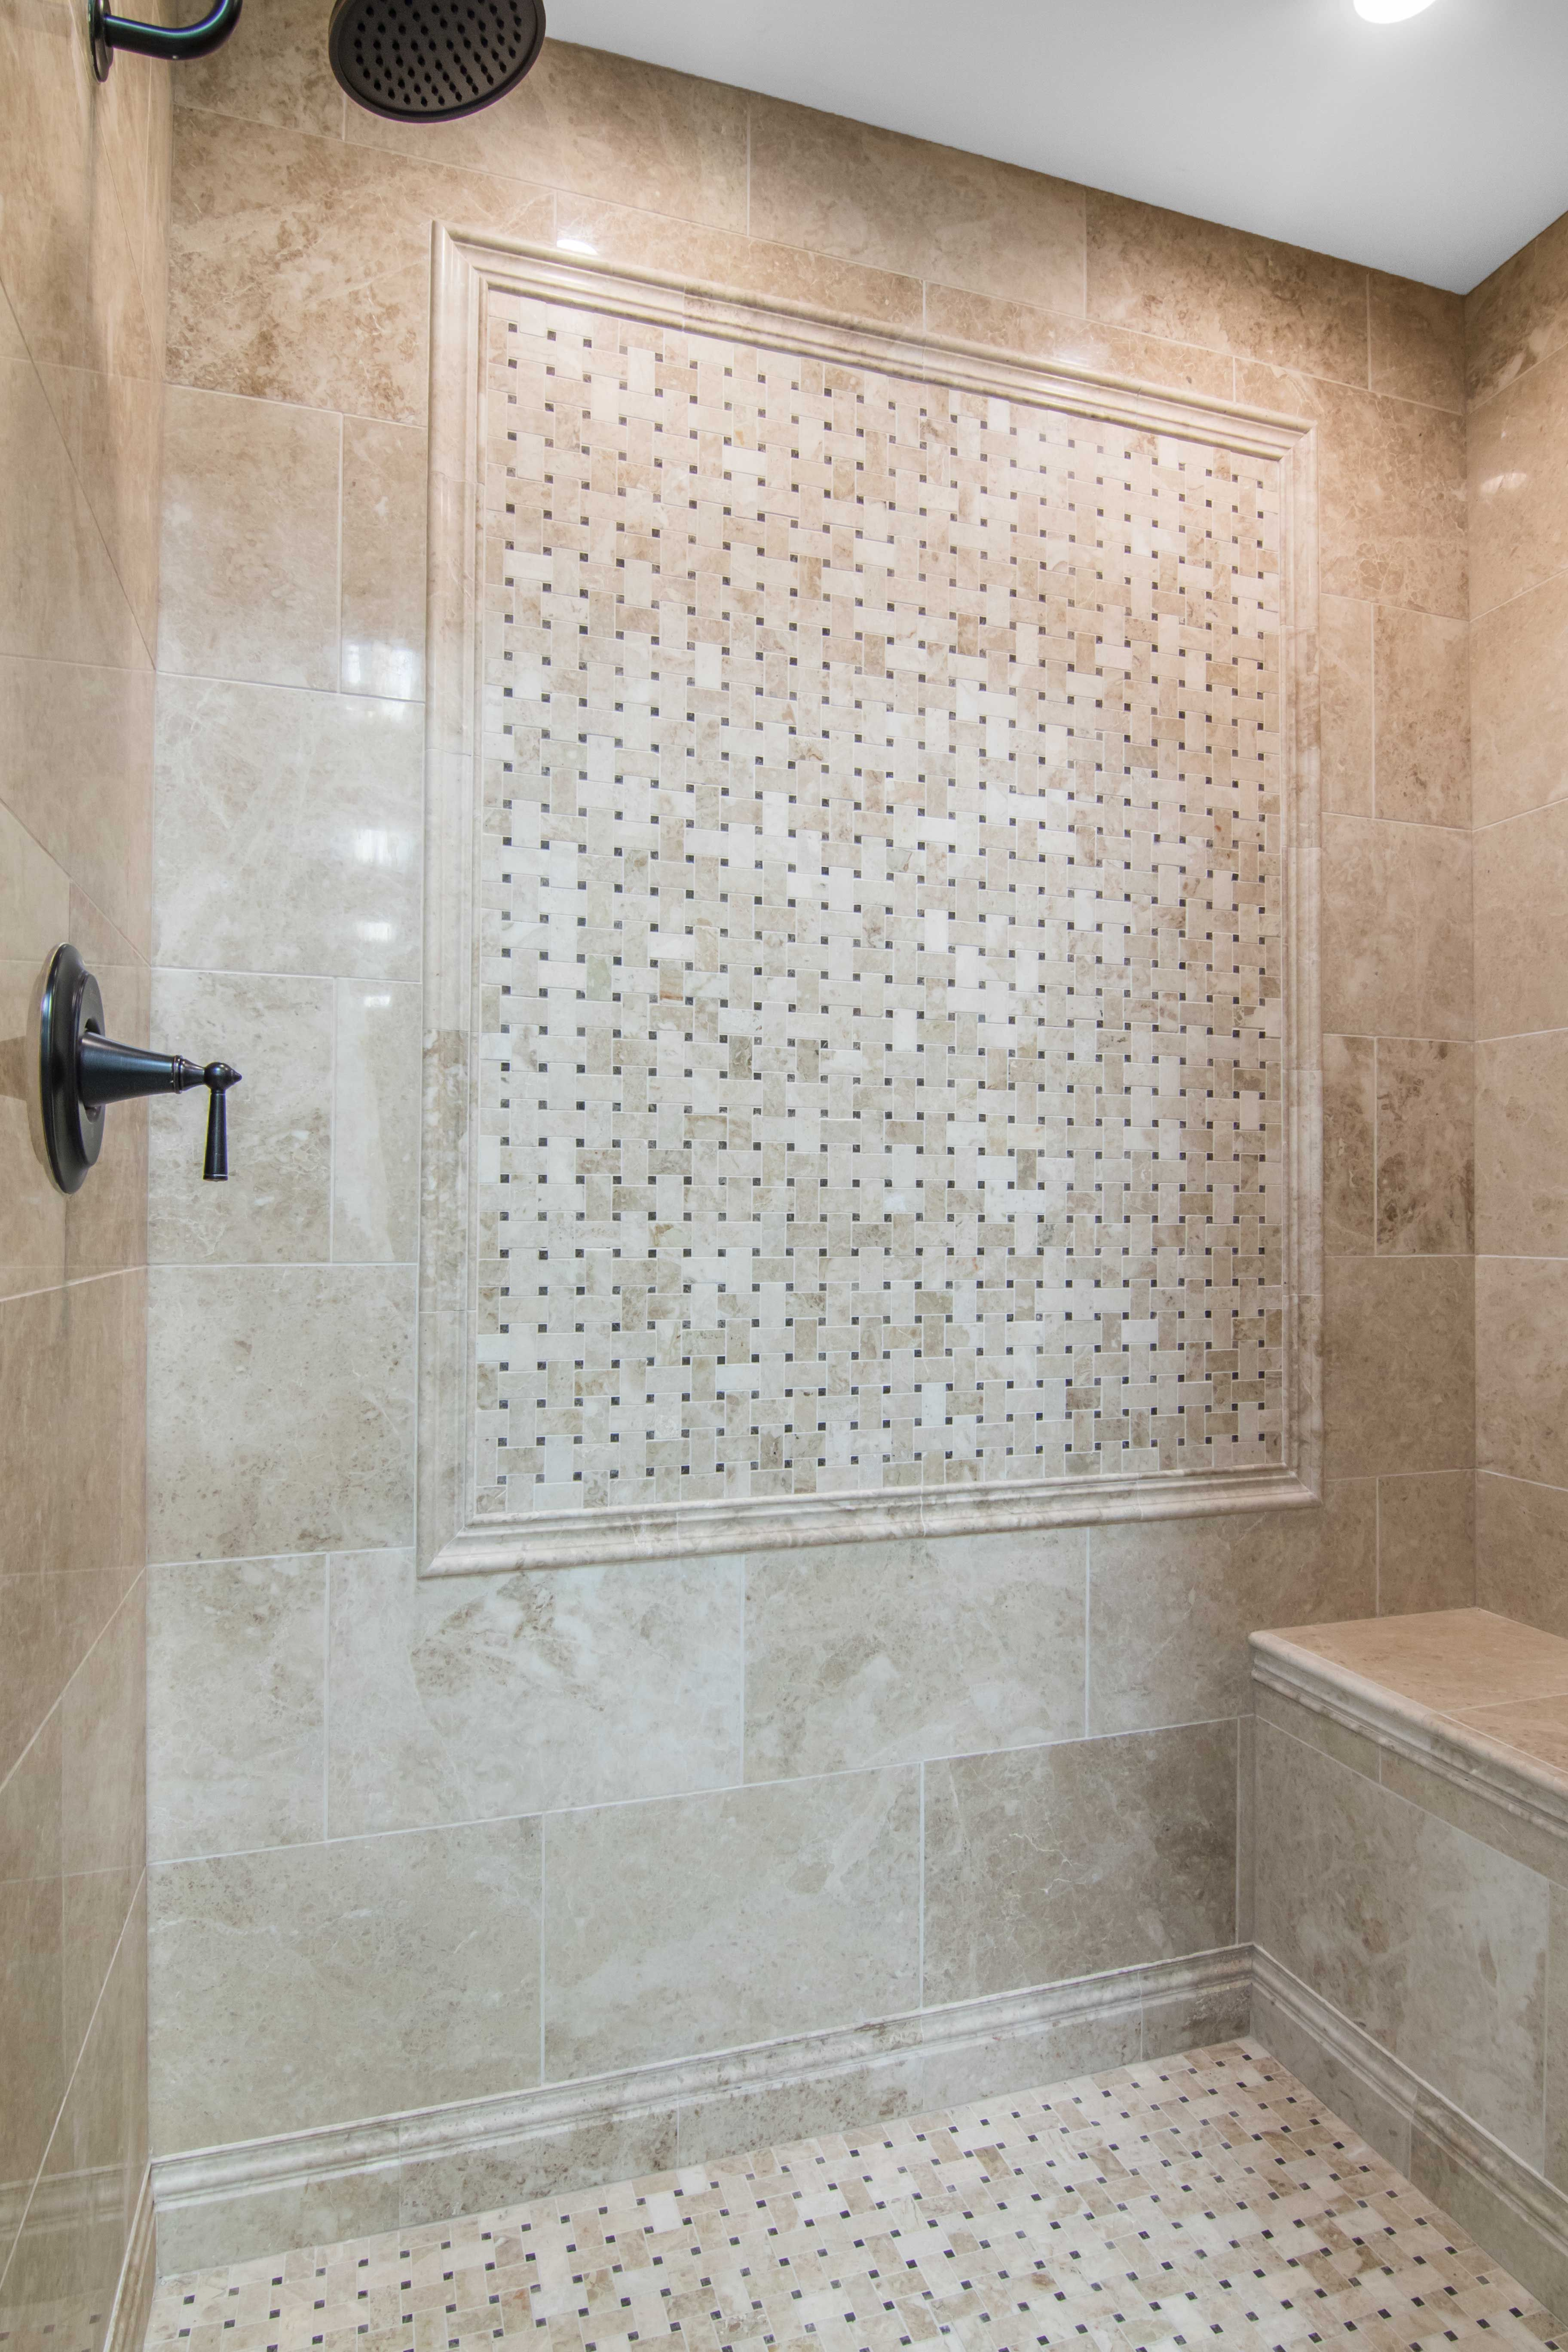 Bathroom shower focal point tile - Cappuccino Niles with Dark ...